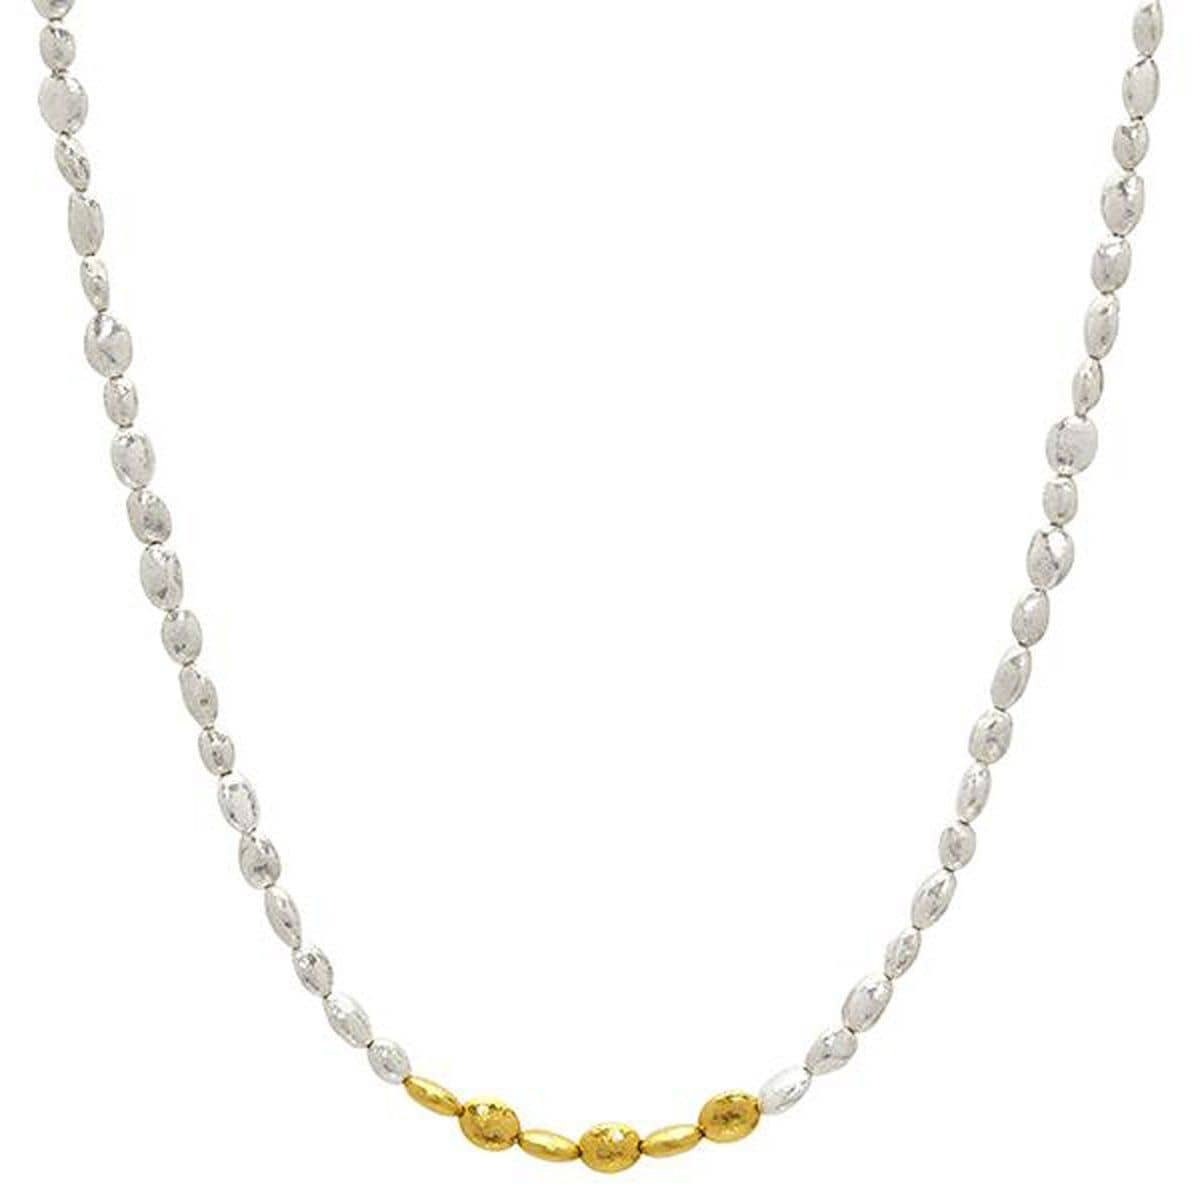 Gold Nugget Necklace - SN-NGXXS-6GIF-AA-16